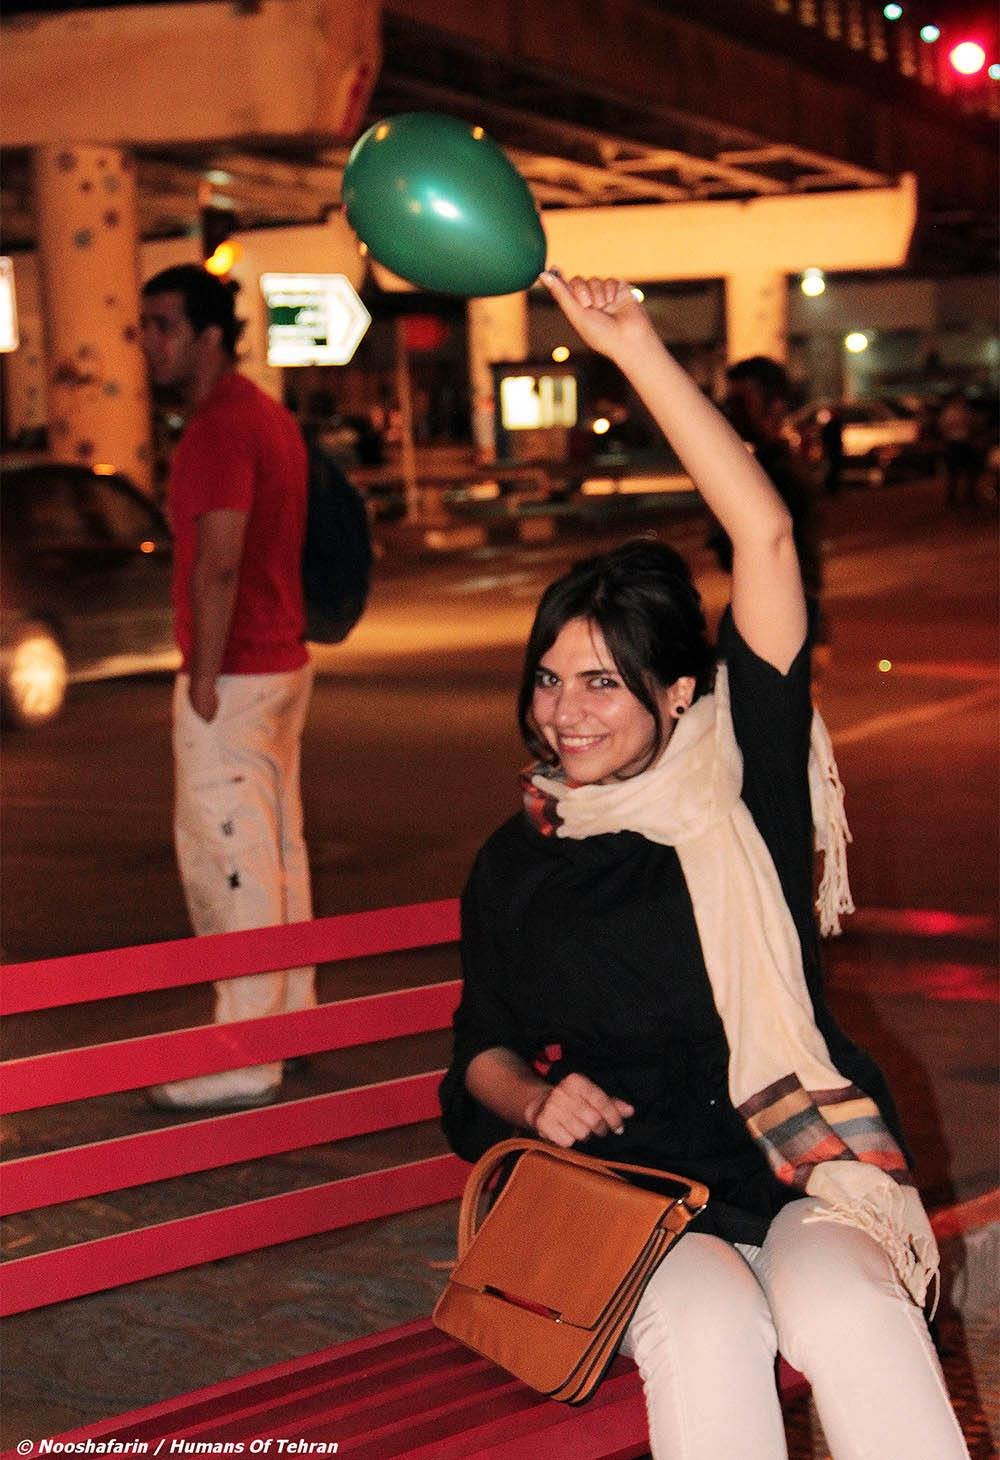 0xxi5ms - rarely seen photos of my great city tehran,iran and its' beautiful people